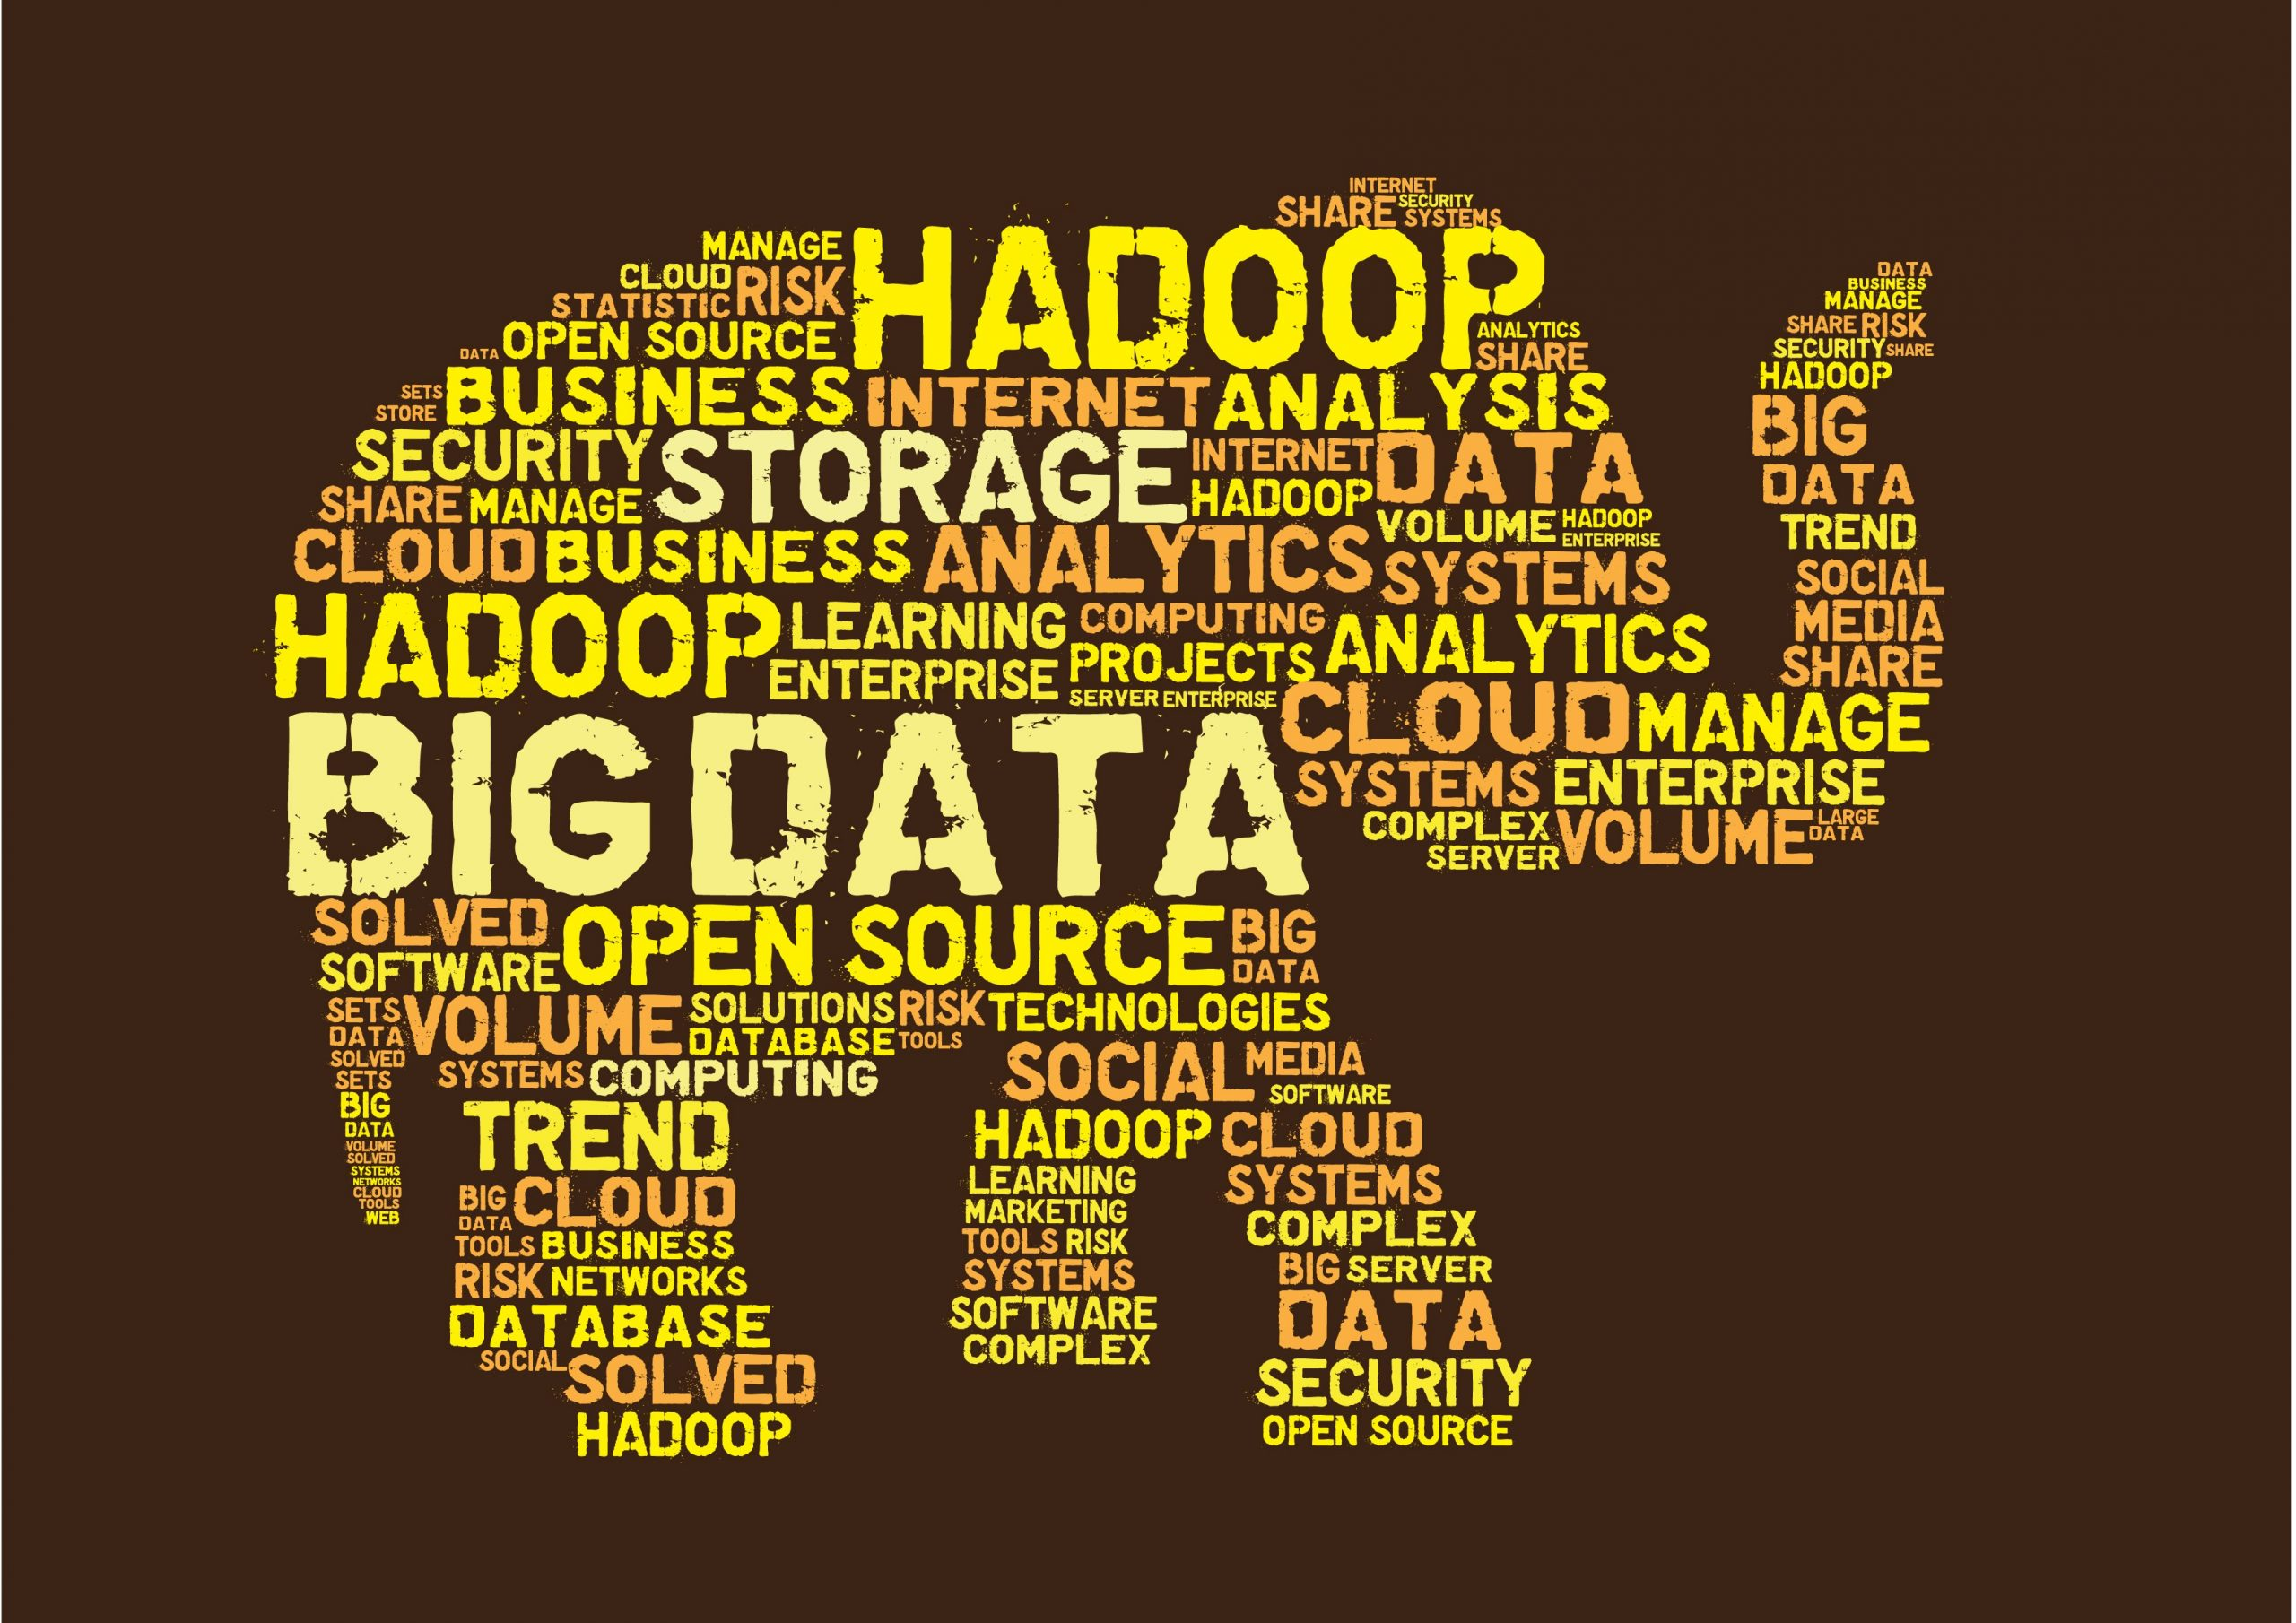 Global Hadoop And Big Data Analytics Market Devolopment Strategies by Top Leading Players|Know More| Forecast 2020-2026